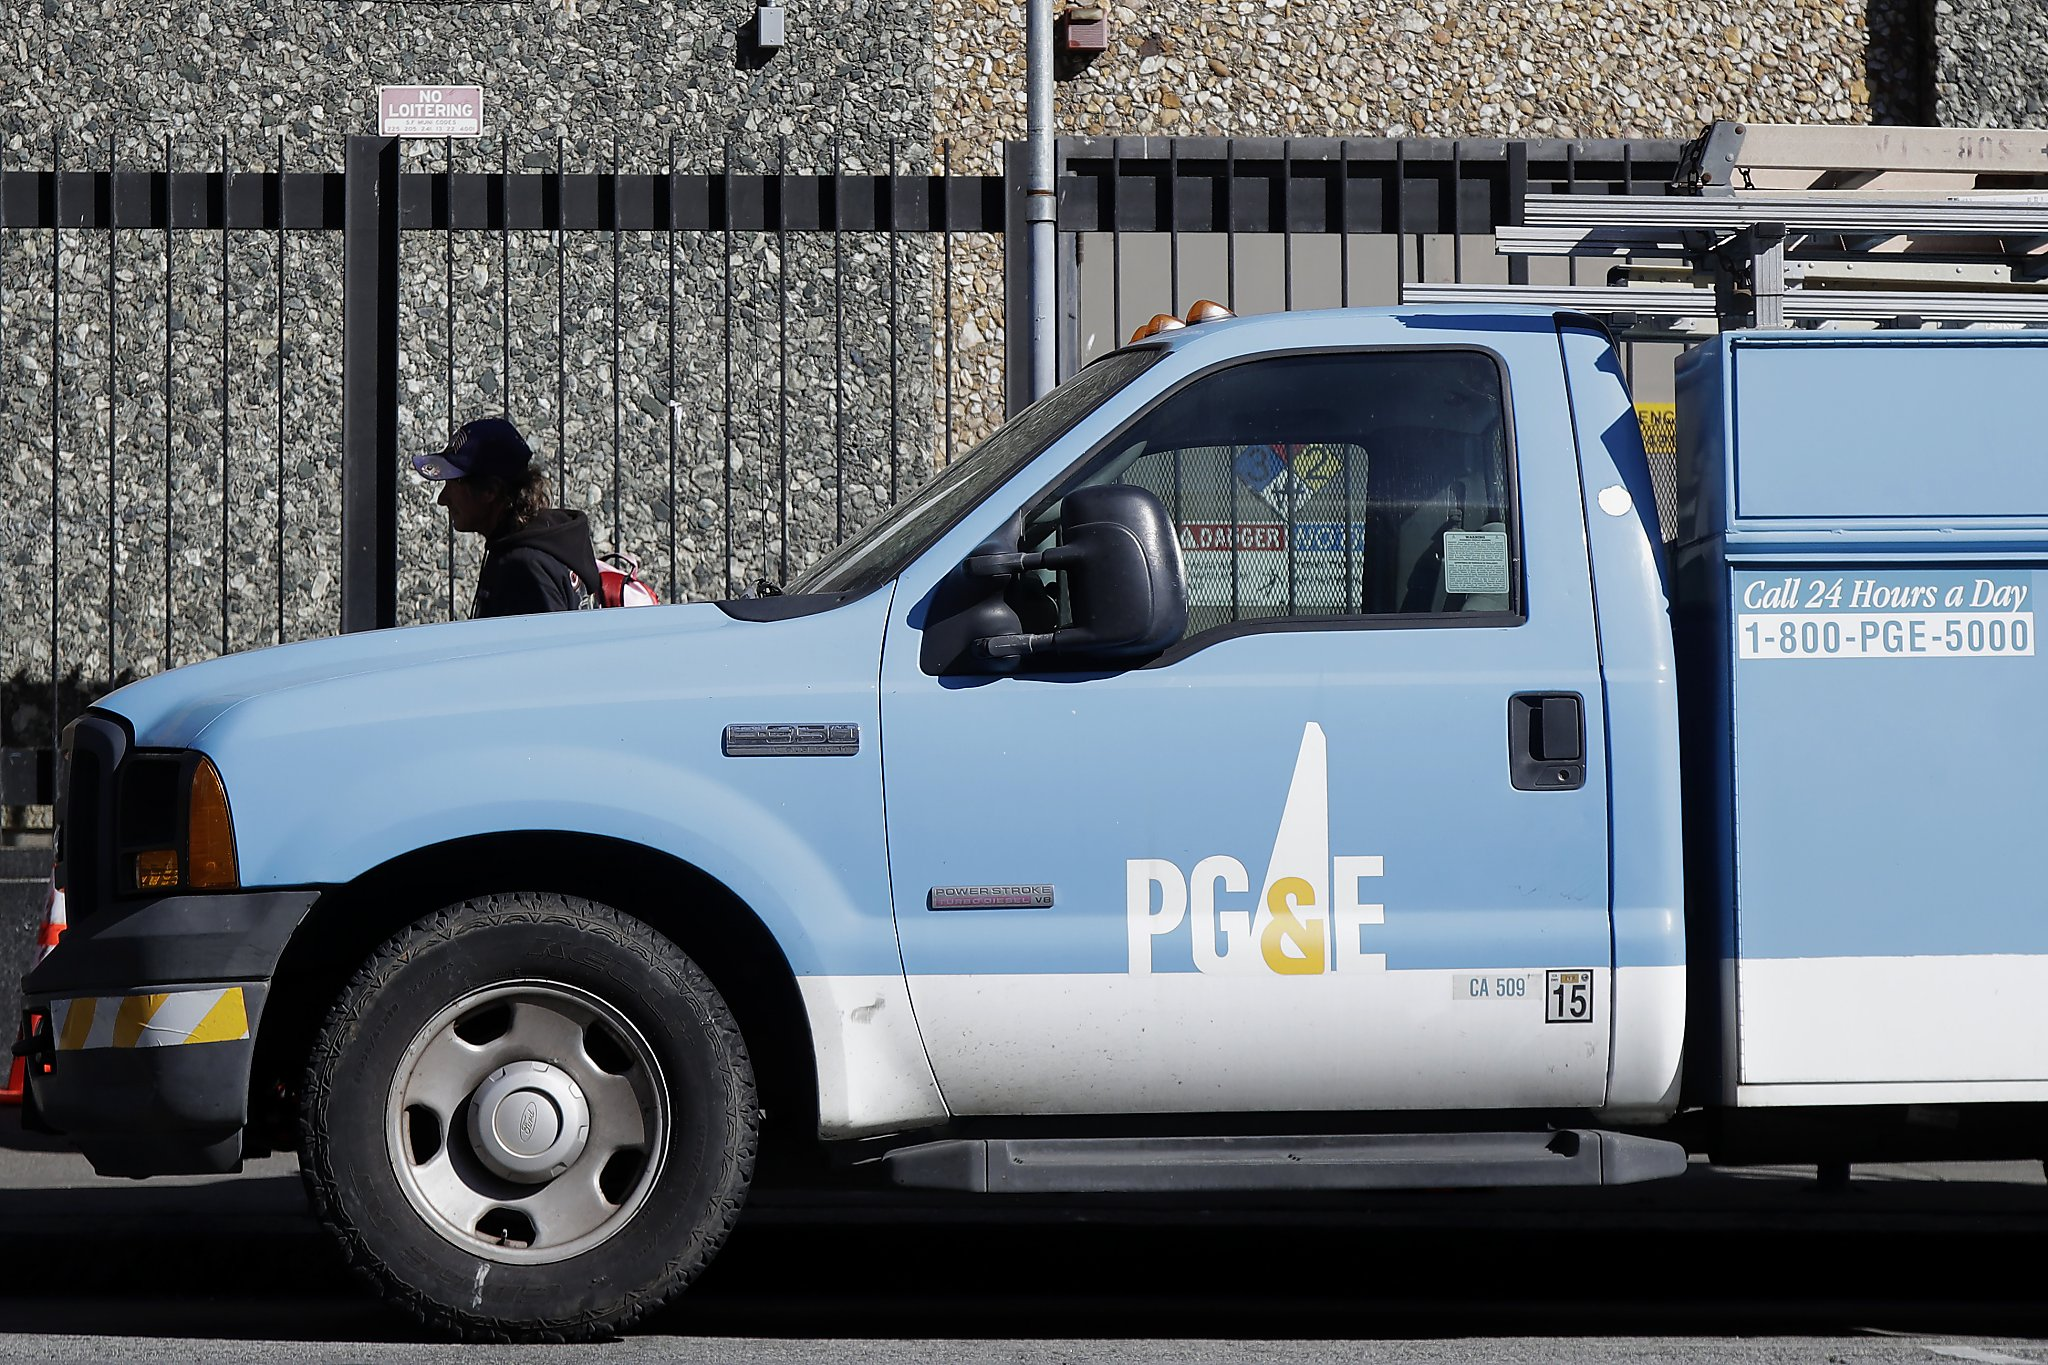 PG&E shut-offs will affect 5 Bay Area counties